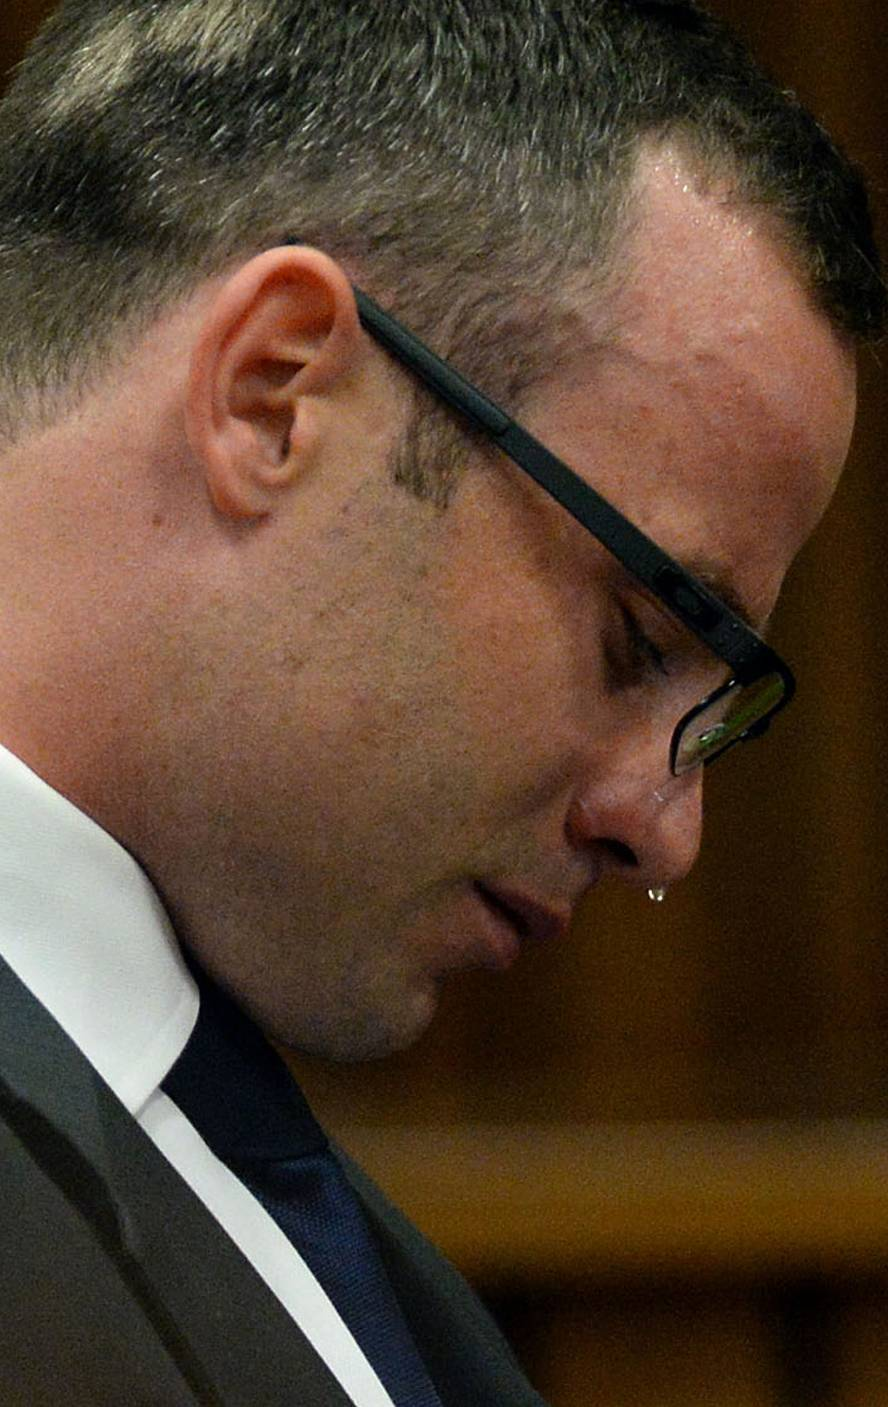 Oscar Pistorius, cries in court as he listens to evidence being given in Pretoria, South Africa, Monday, March 24, 2014. Pistorius is on trial for the shooting death of his girlfriend Reeva Steenkamp on Valentines Day 2013.